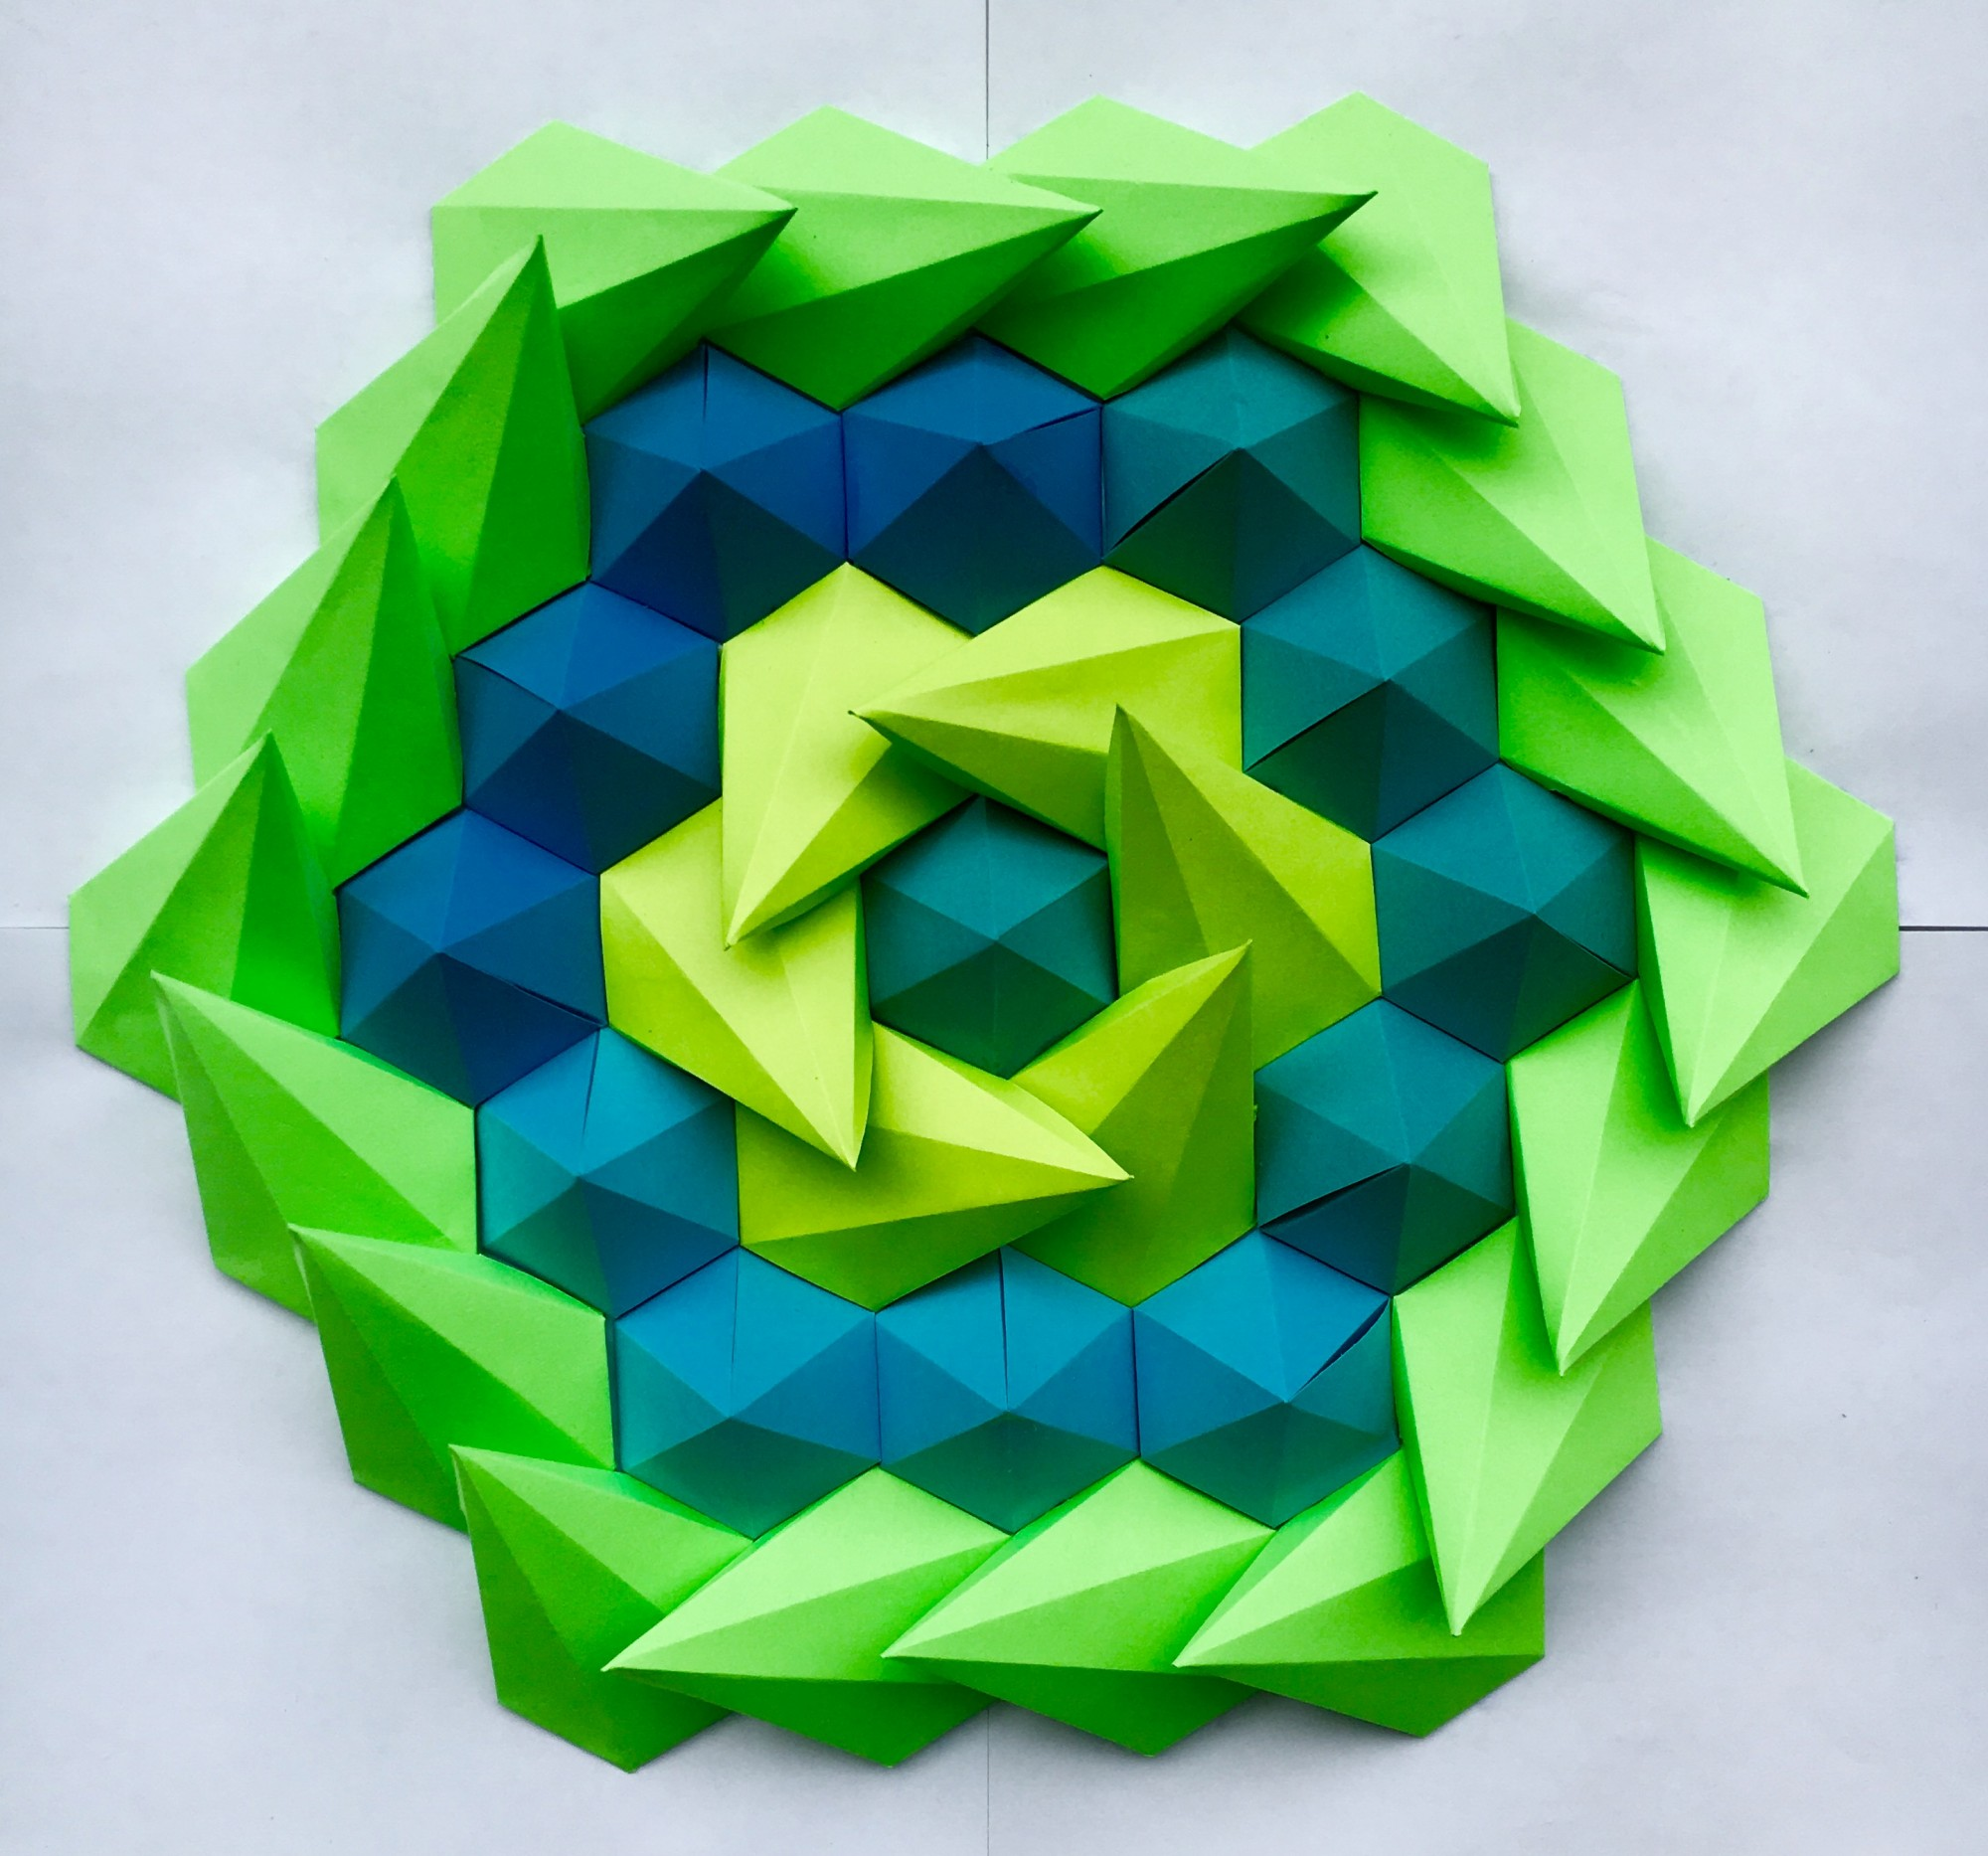 Mathematical-Inspired-3D-Paper-Kaleidoscope-Tessellations-Brandon-Clark-Strictlypaper8